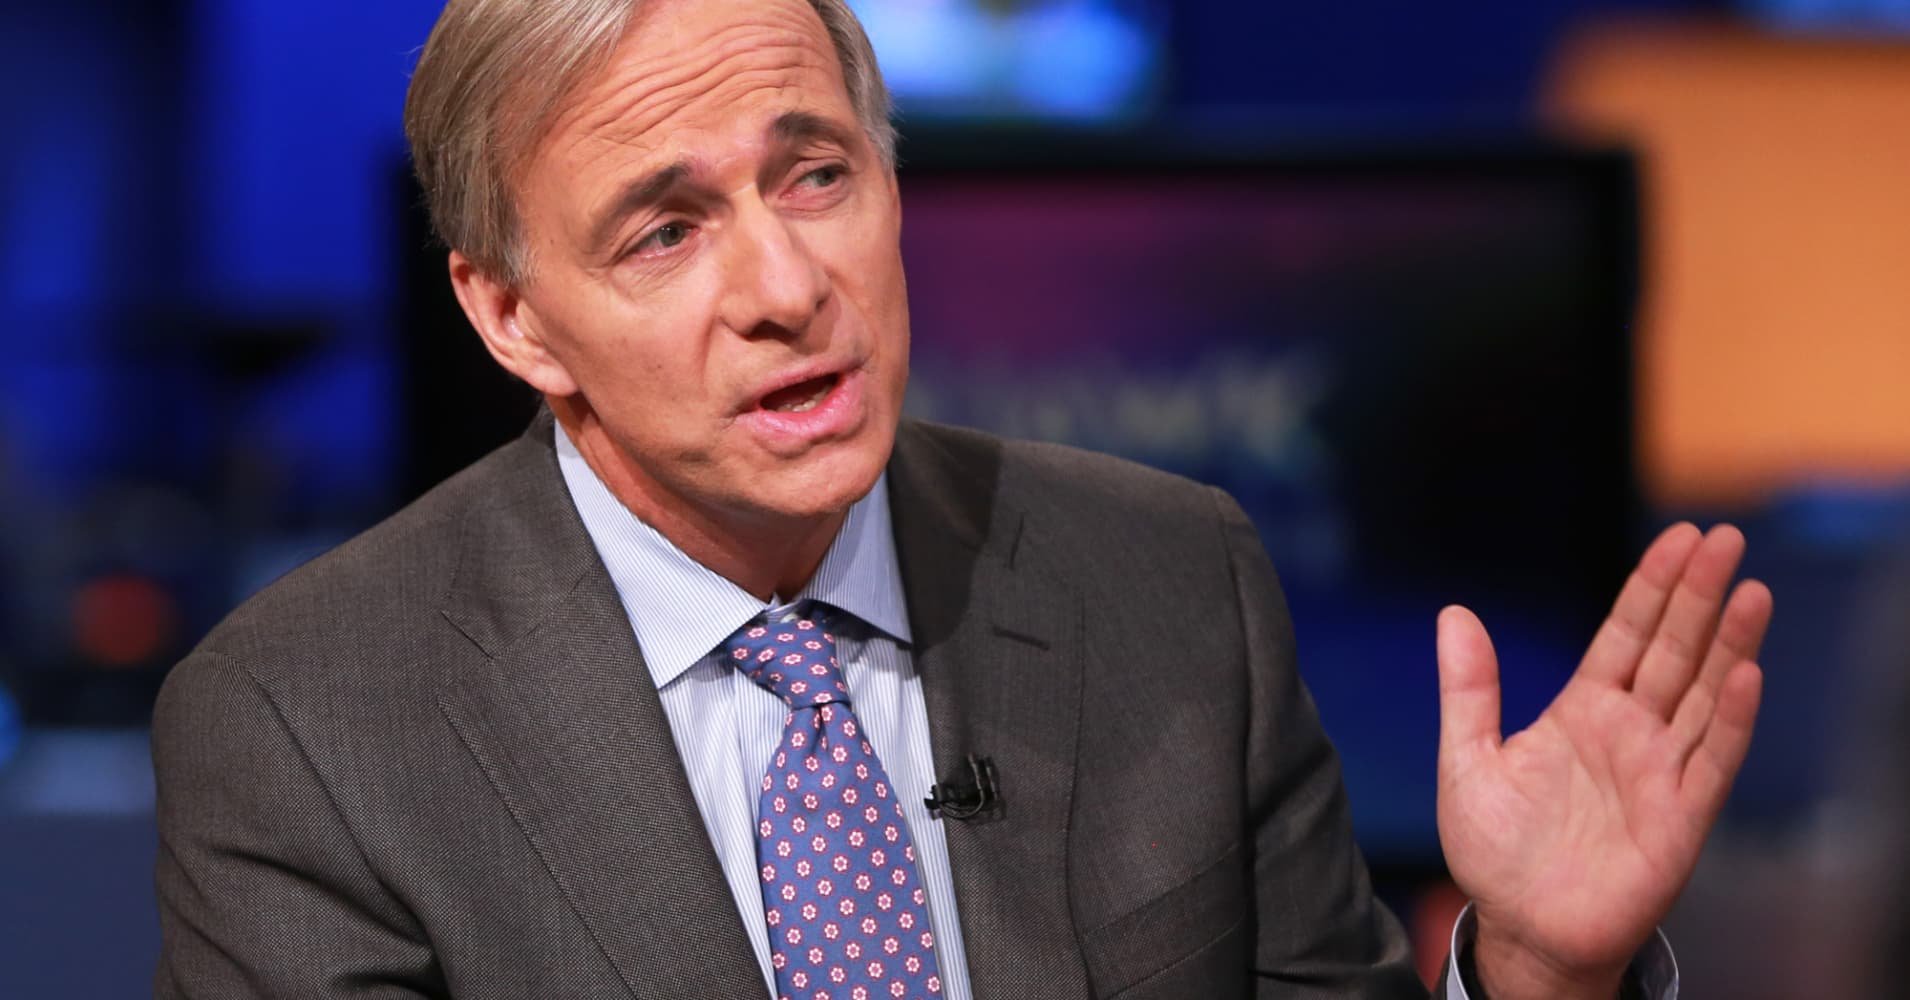 Once secretive hedge fund legend Ray Dalio opens up more, joins Twitter